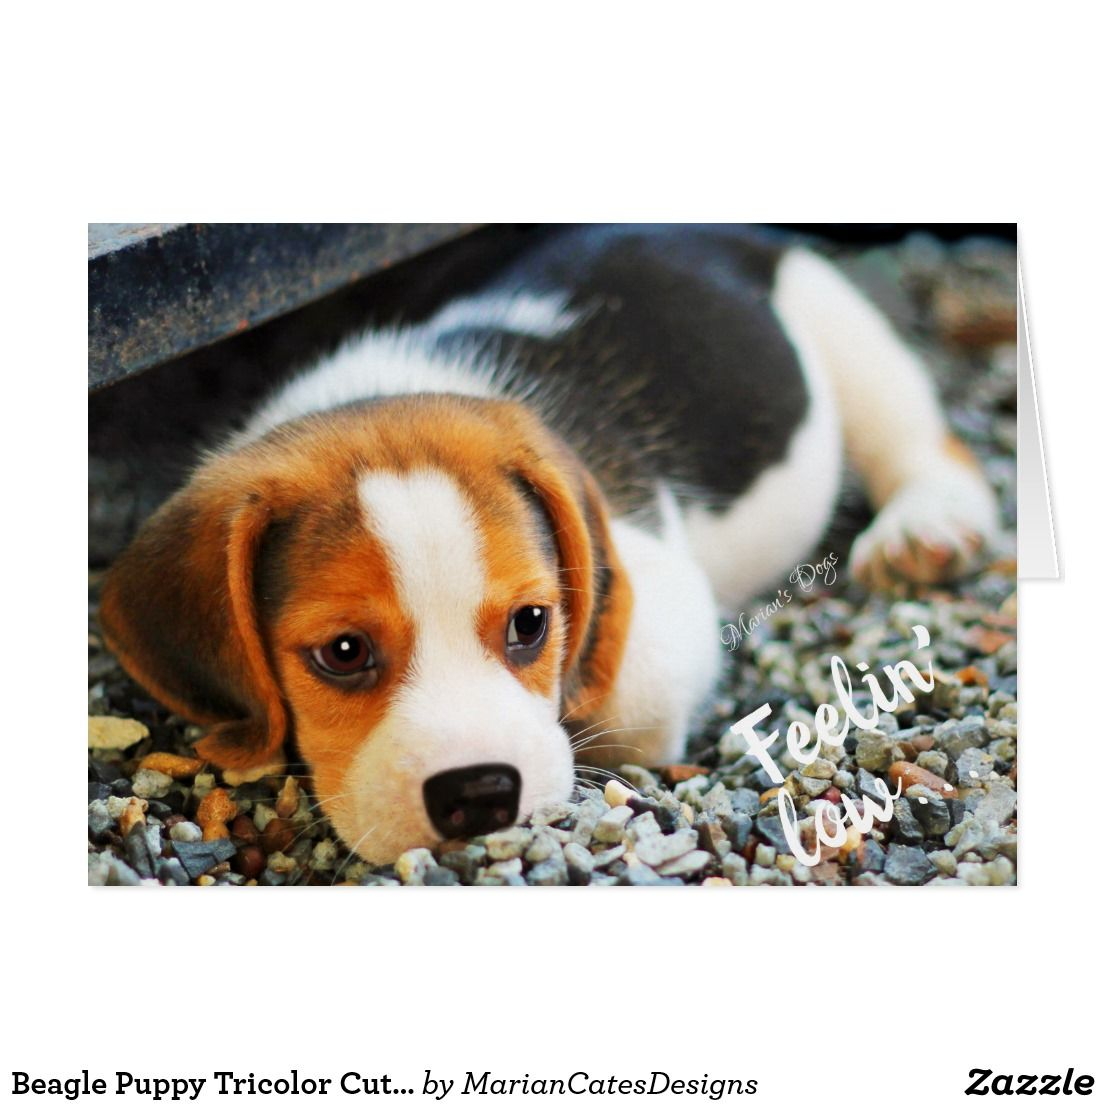 Beagle Puppy Tricolor Cute Adorable Missing You Card Zazzle Com